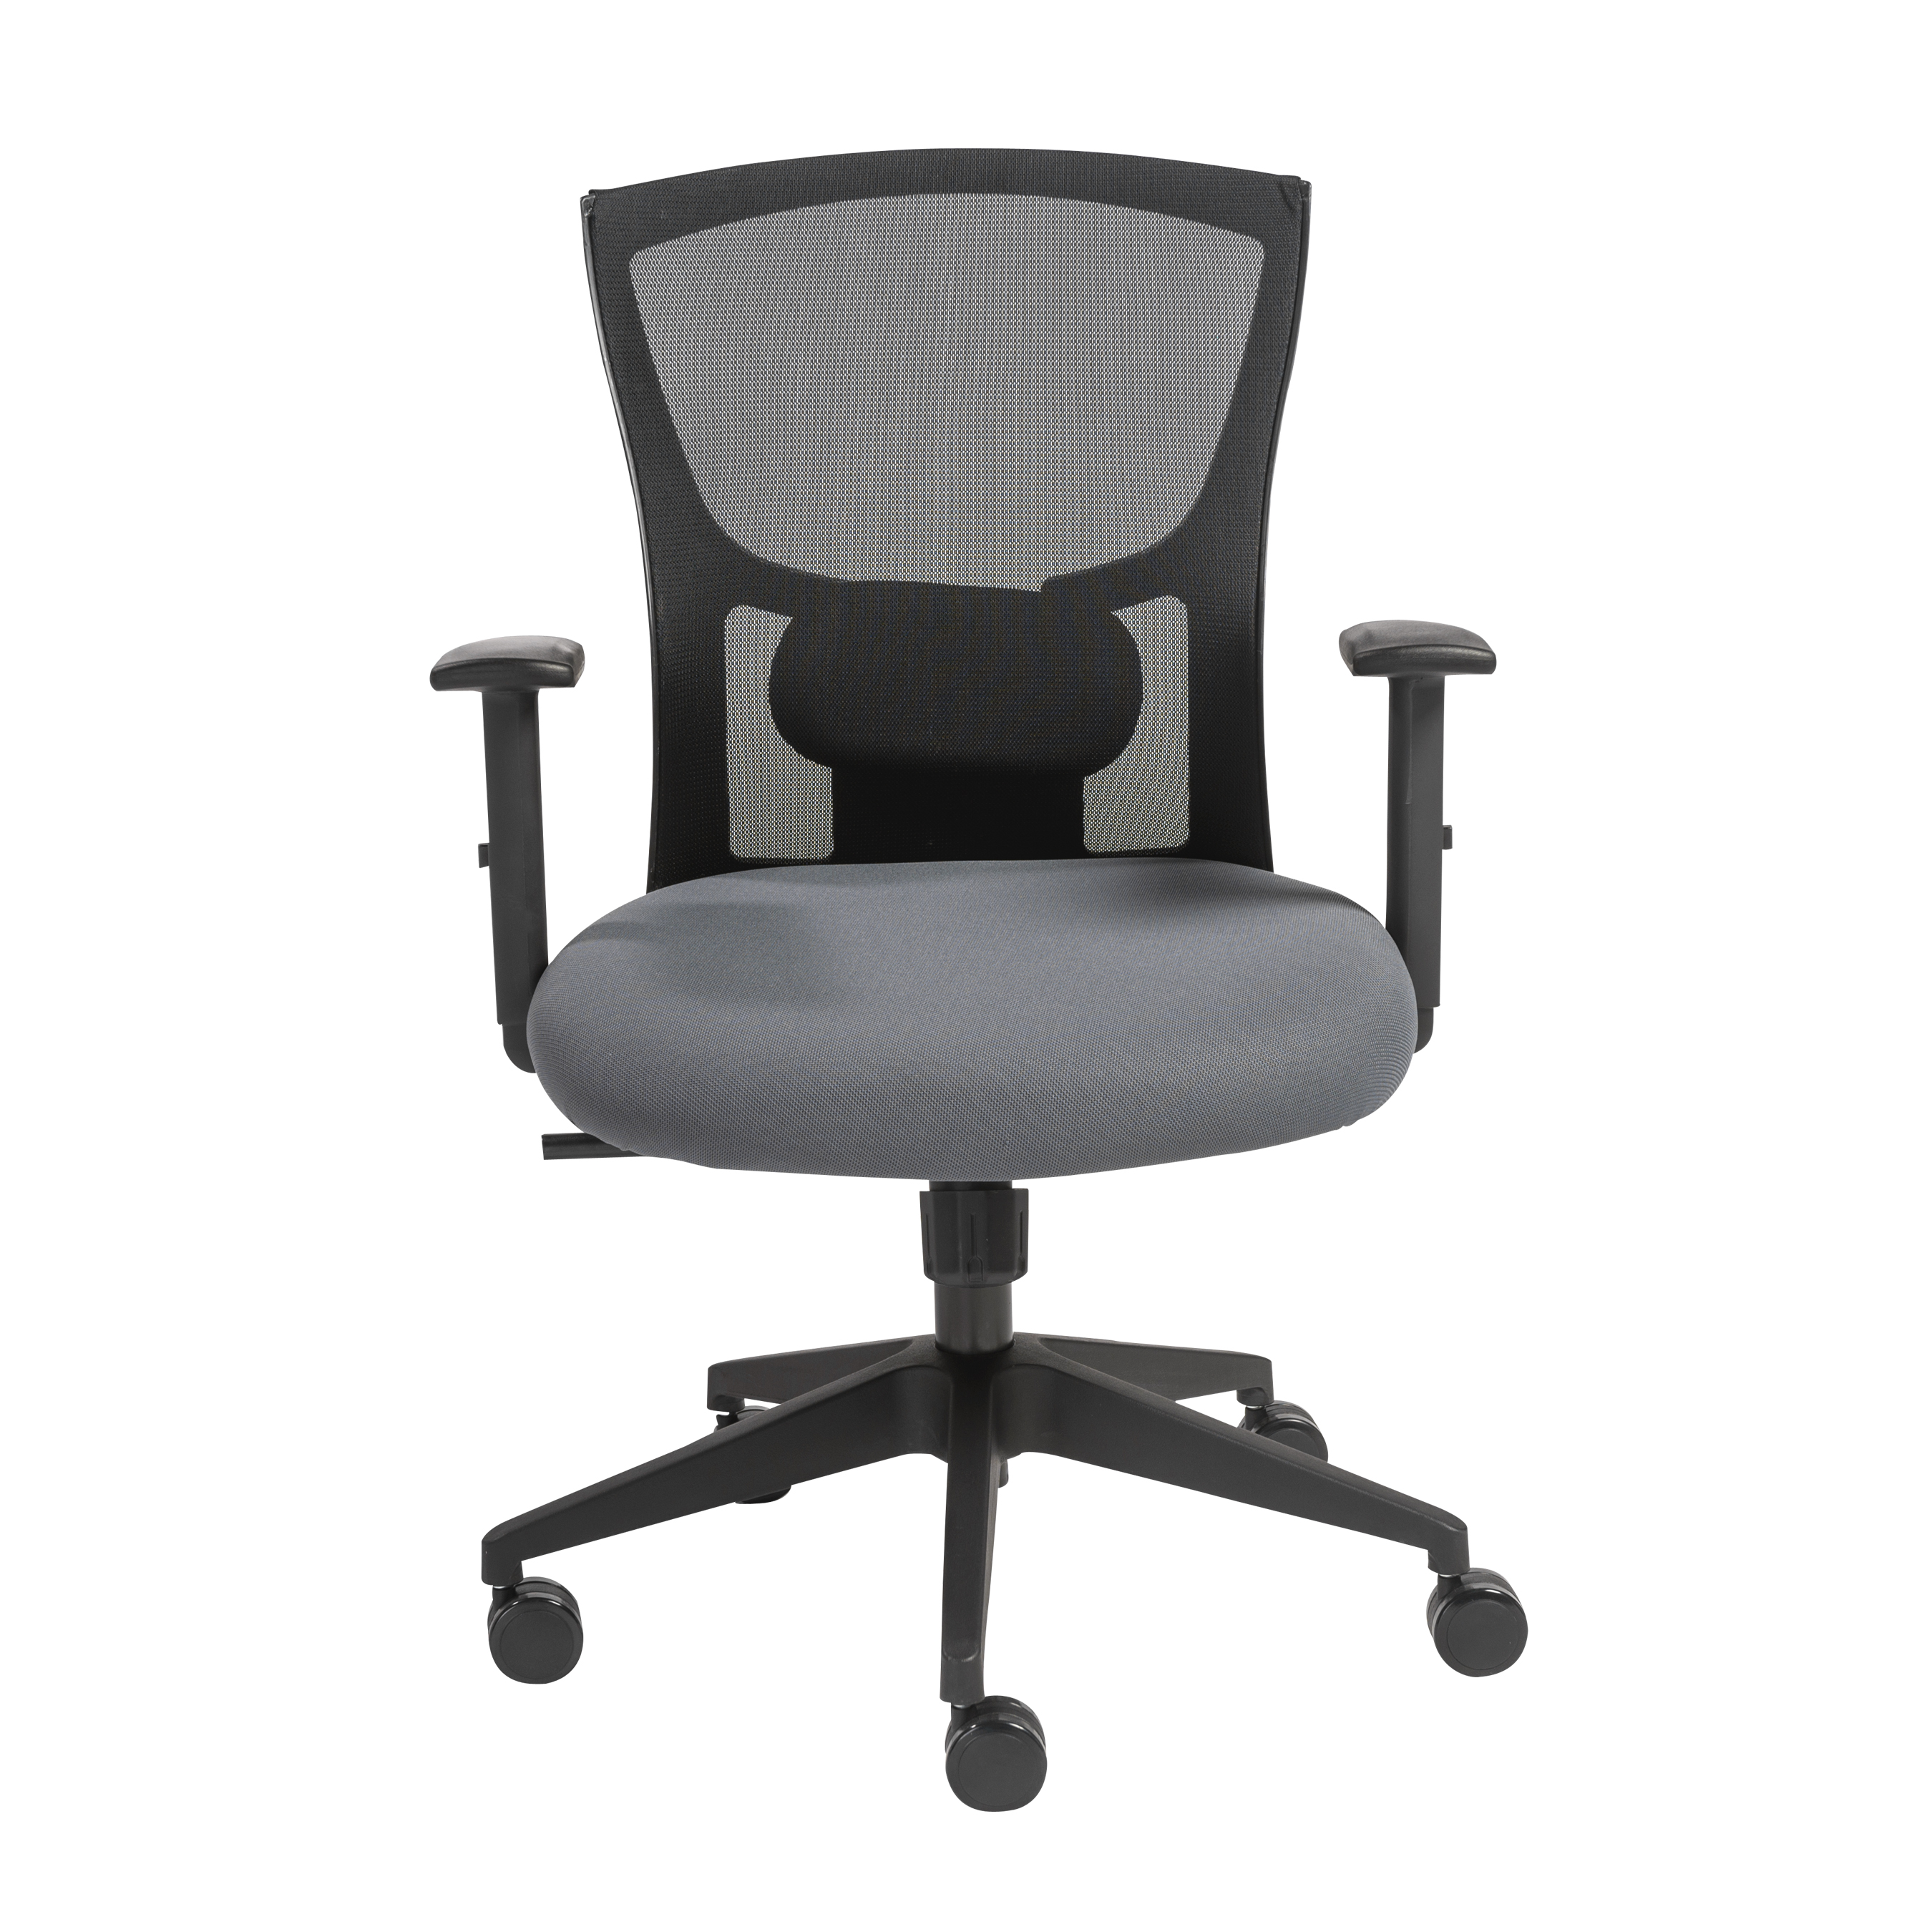 Belma Low Back Office Chair By Euro Style